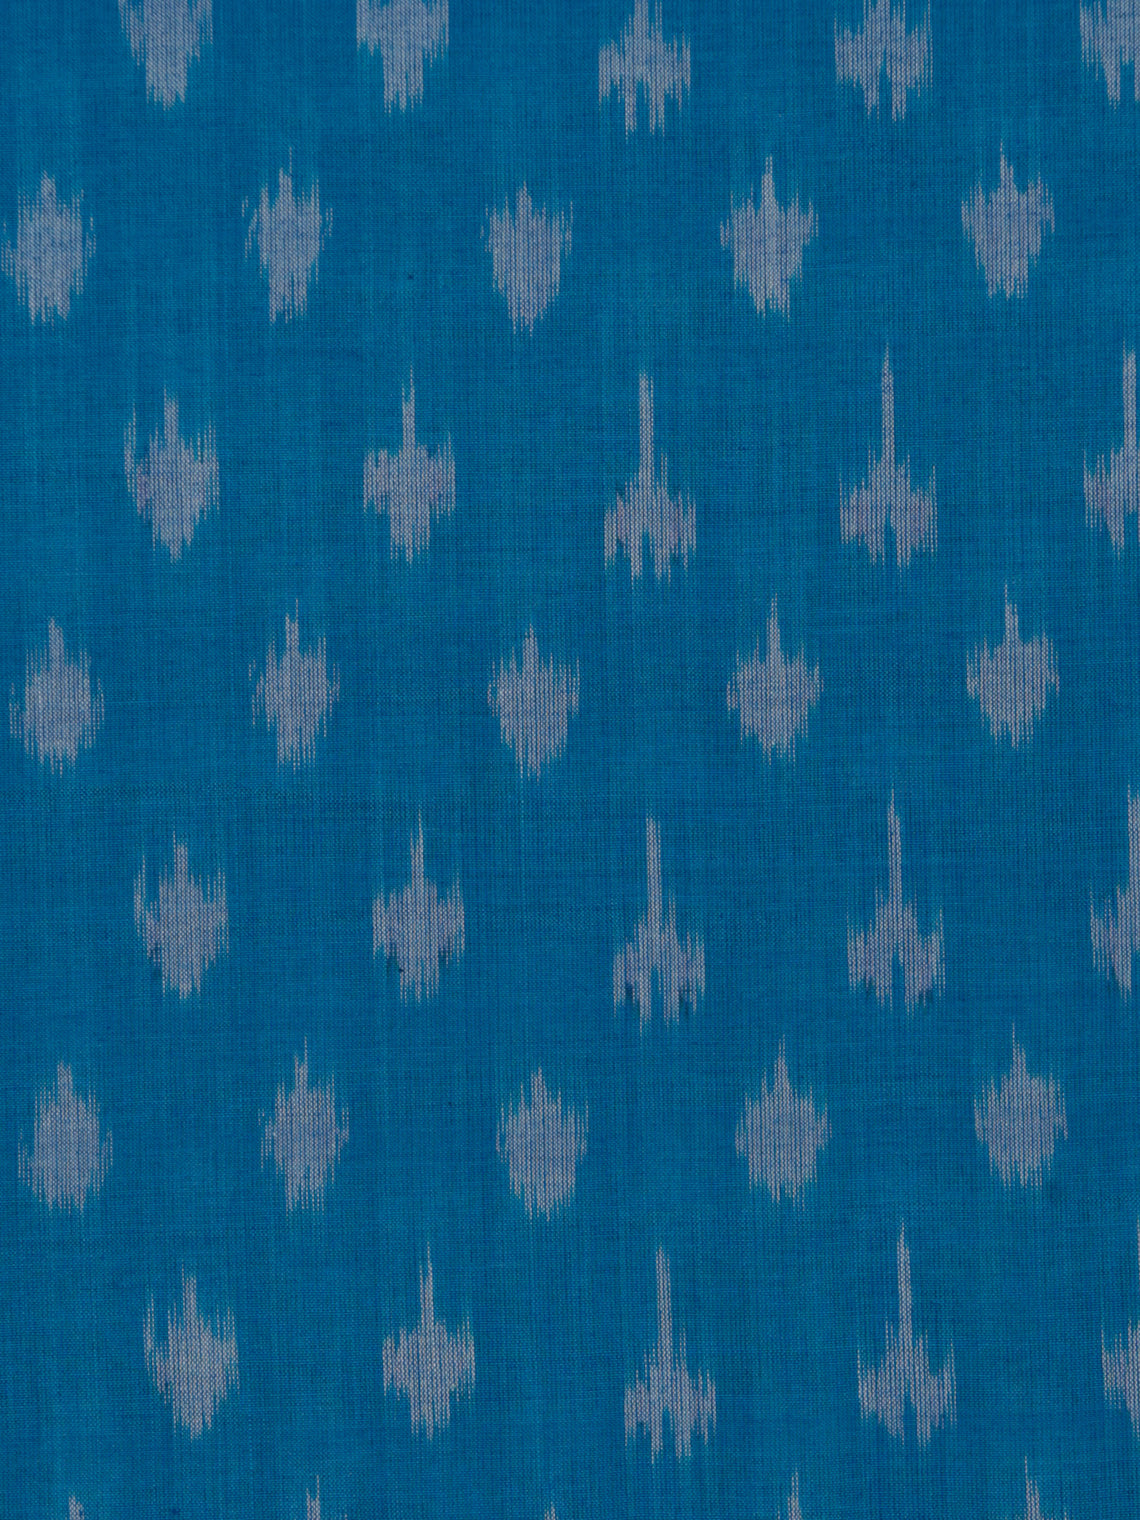 Turquoise Grey Hand Weaved Ikat Mercerised Cotton Fabric Per Meter - F002F1752